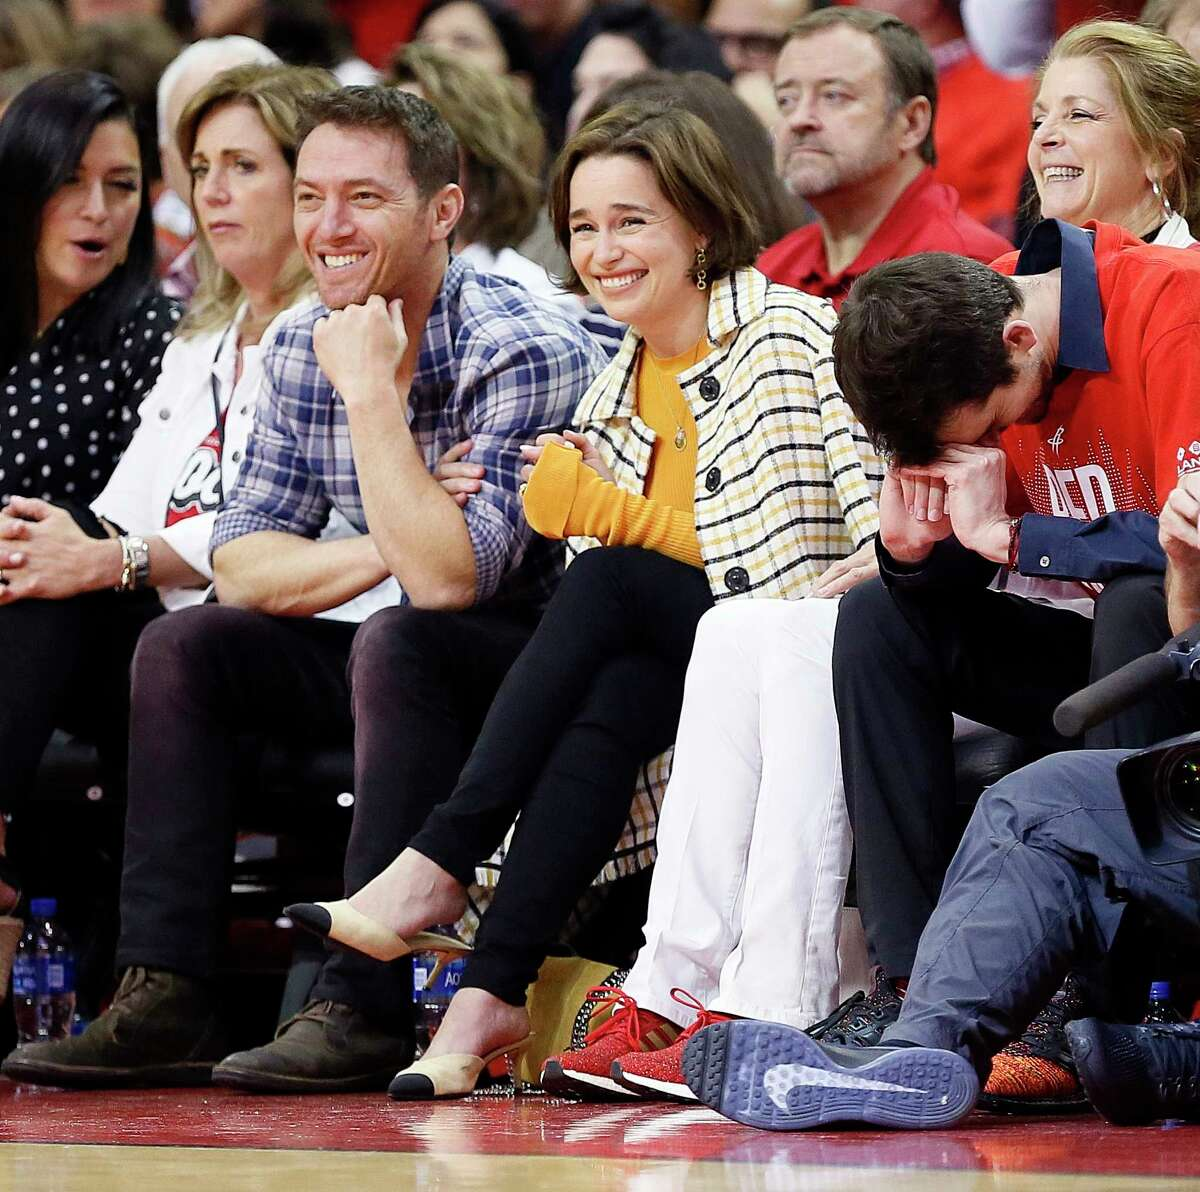 HOUSTON, TEXAS - MAY 10: Emilia Clarke from Game of Thrones watches courtside during Game Six of the Western Conference Semifinals of the 2019 NBA Playoffs at Toyota Center on May 10, 2019 in Houston, Texas. NOTE TO USER: User expressly acknowledges and agrees that, by downloading and or using this photograph, User is consenting to the terms and conditions of the Getty Images License Agreement.